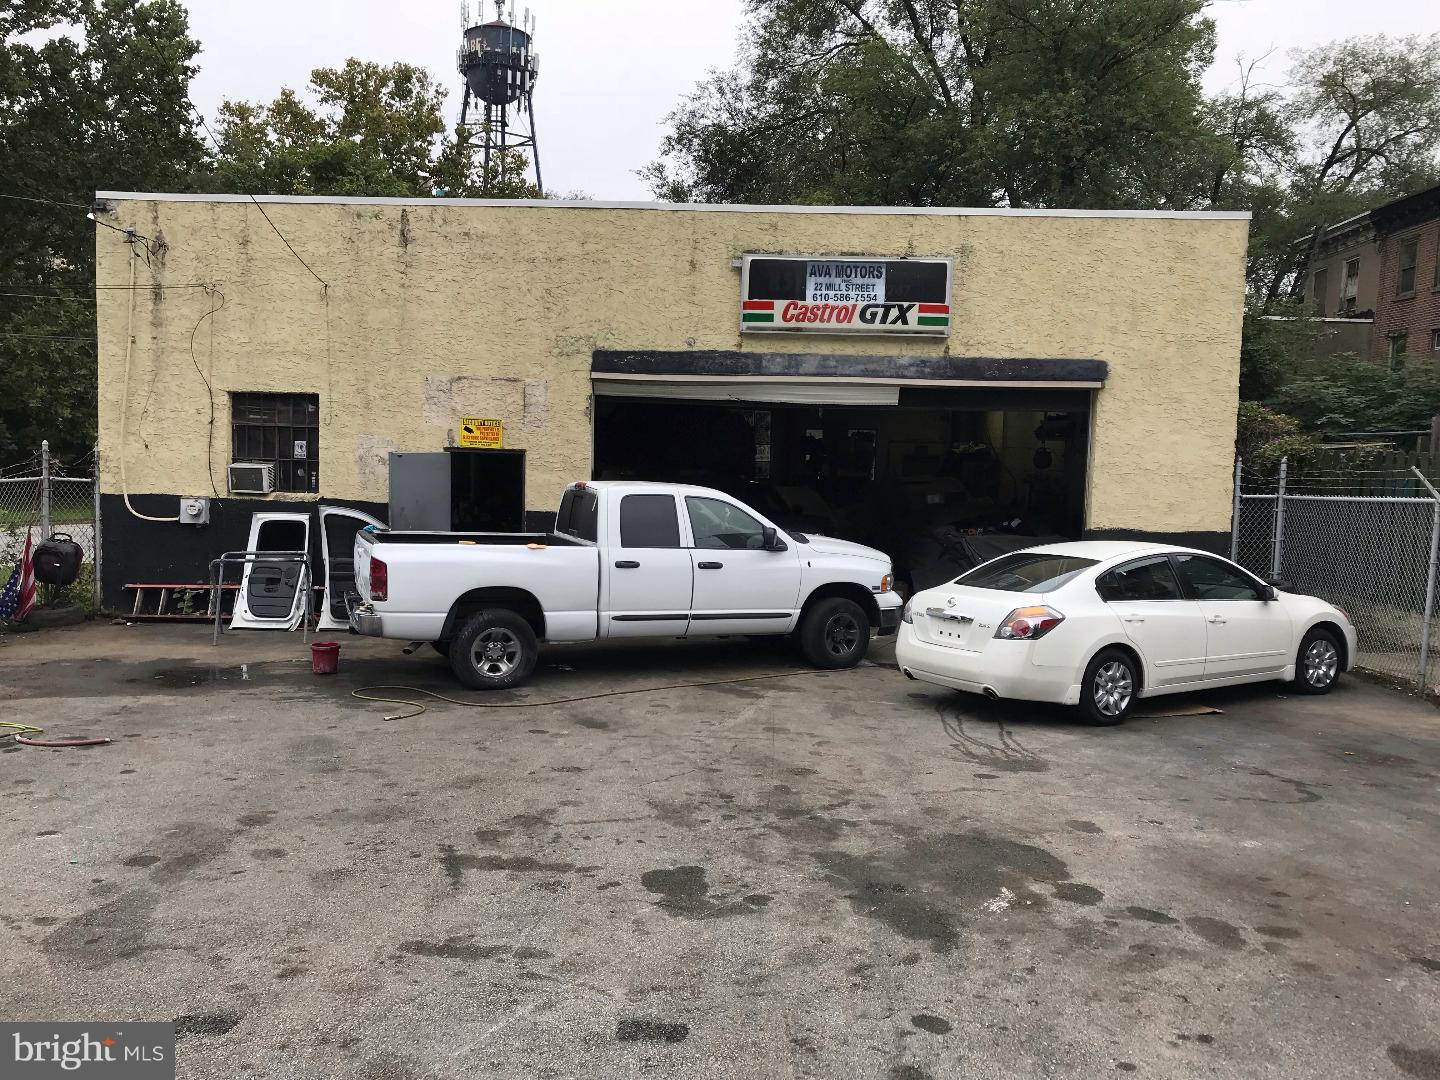 Commercial Garage seated on 0.13 acres for sale. Features Overhead Door, Security Cameras, Security Fencing, Signage, Heavy Duty Floors and Parking for 20 cars in the two parking areas, one in front of the building and one in the rear.